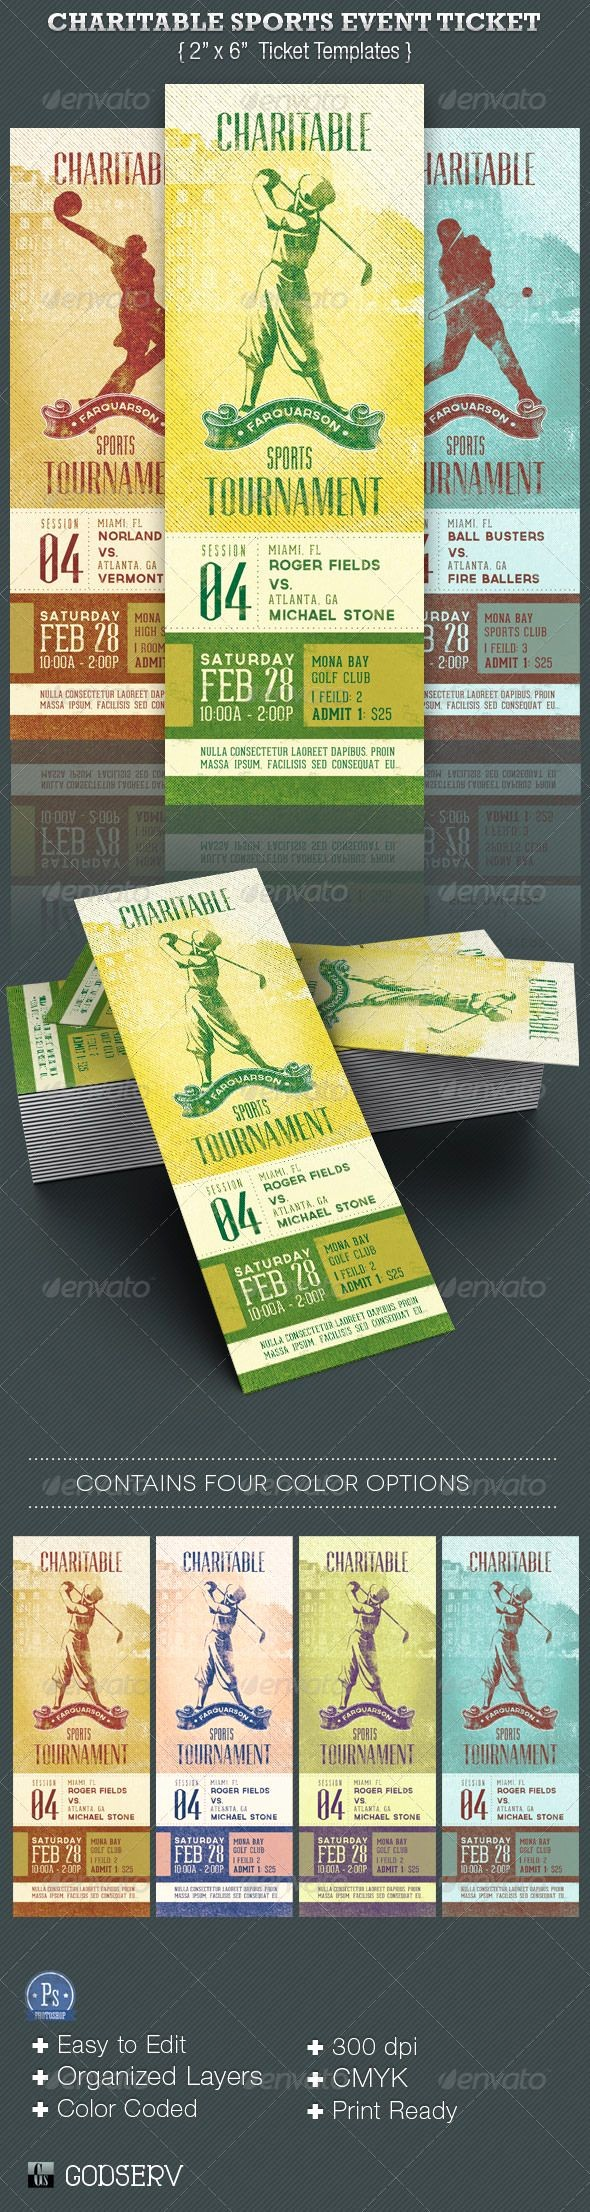 Printable event Tickets Template Free Elegant Best 25 event Ticket Template Ideas On Pinterest